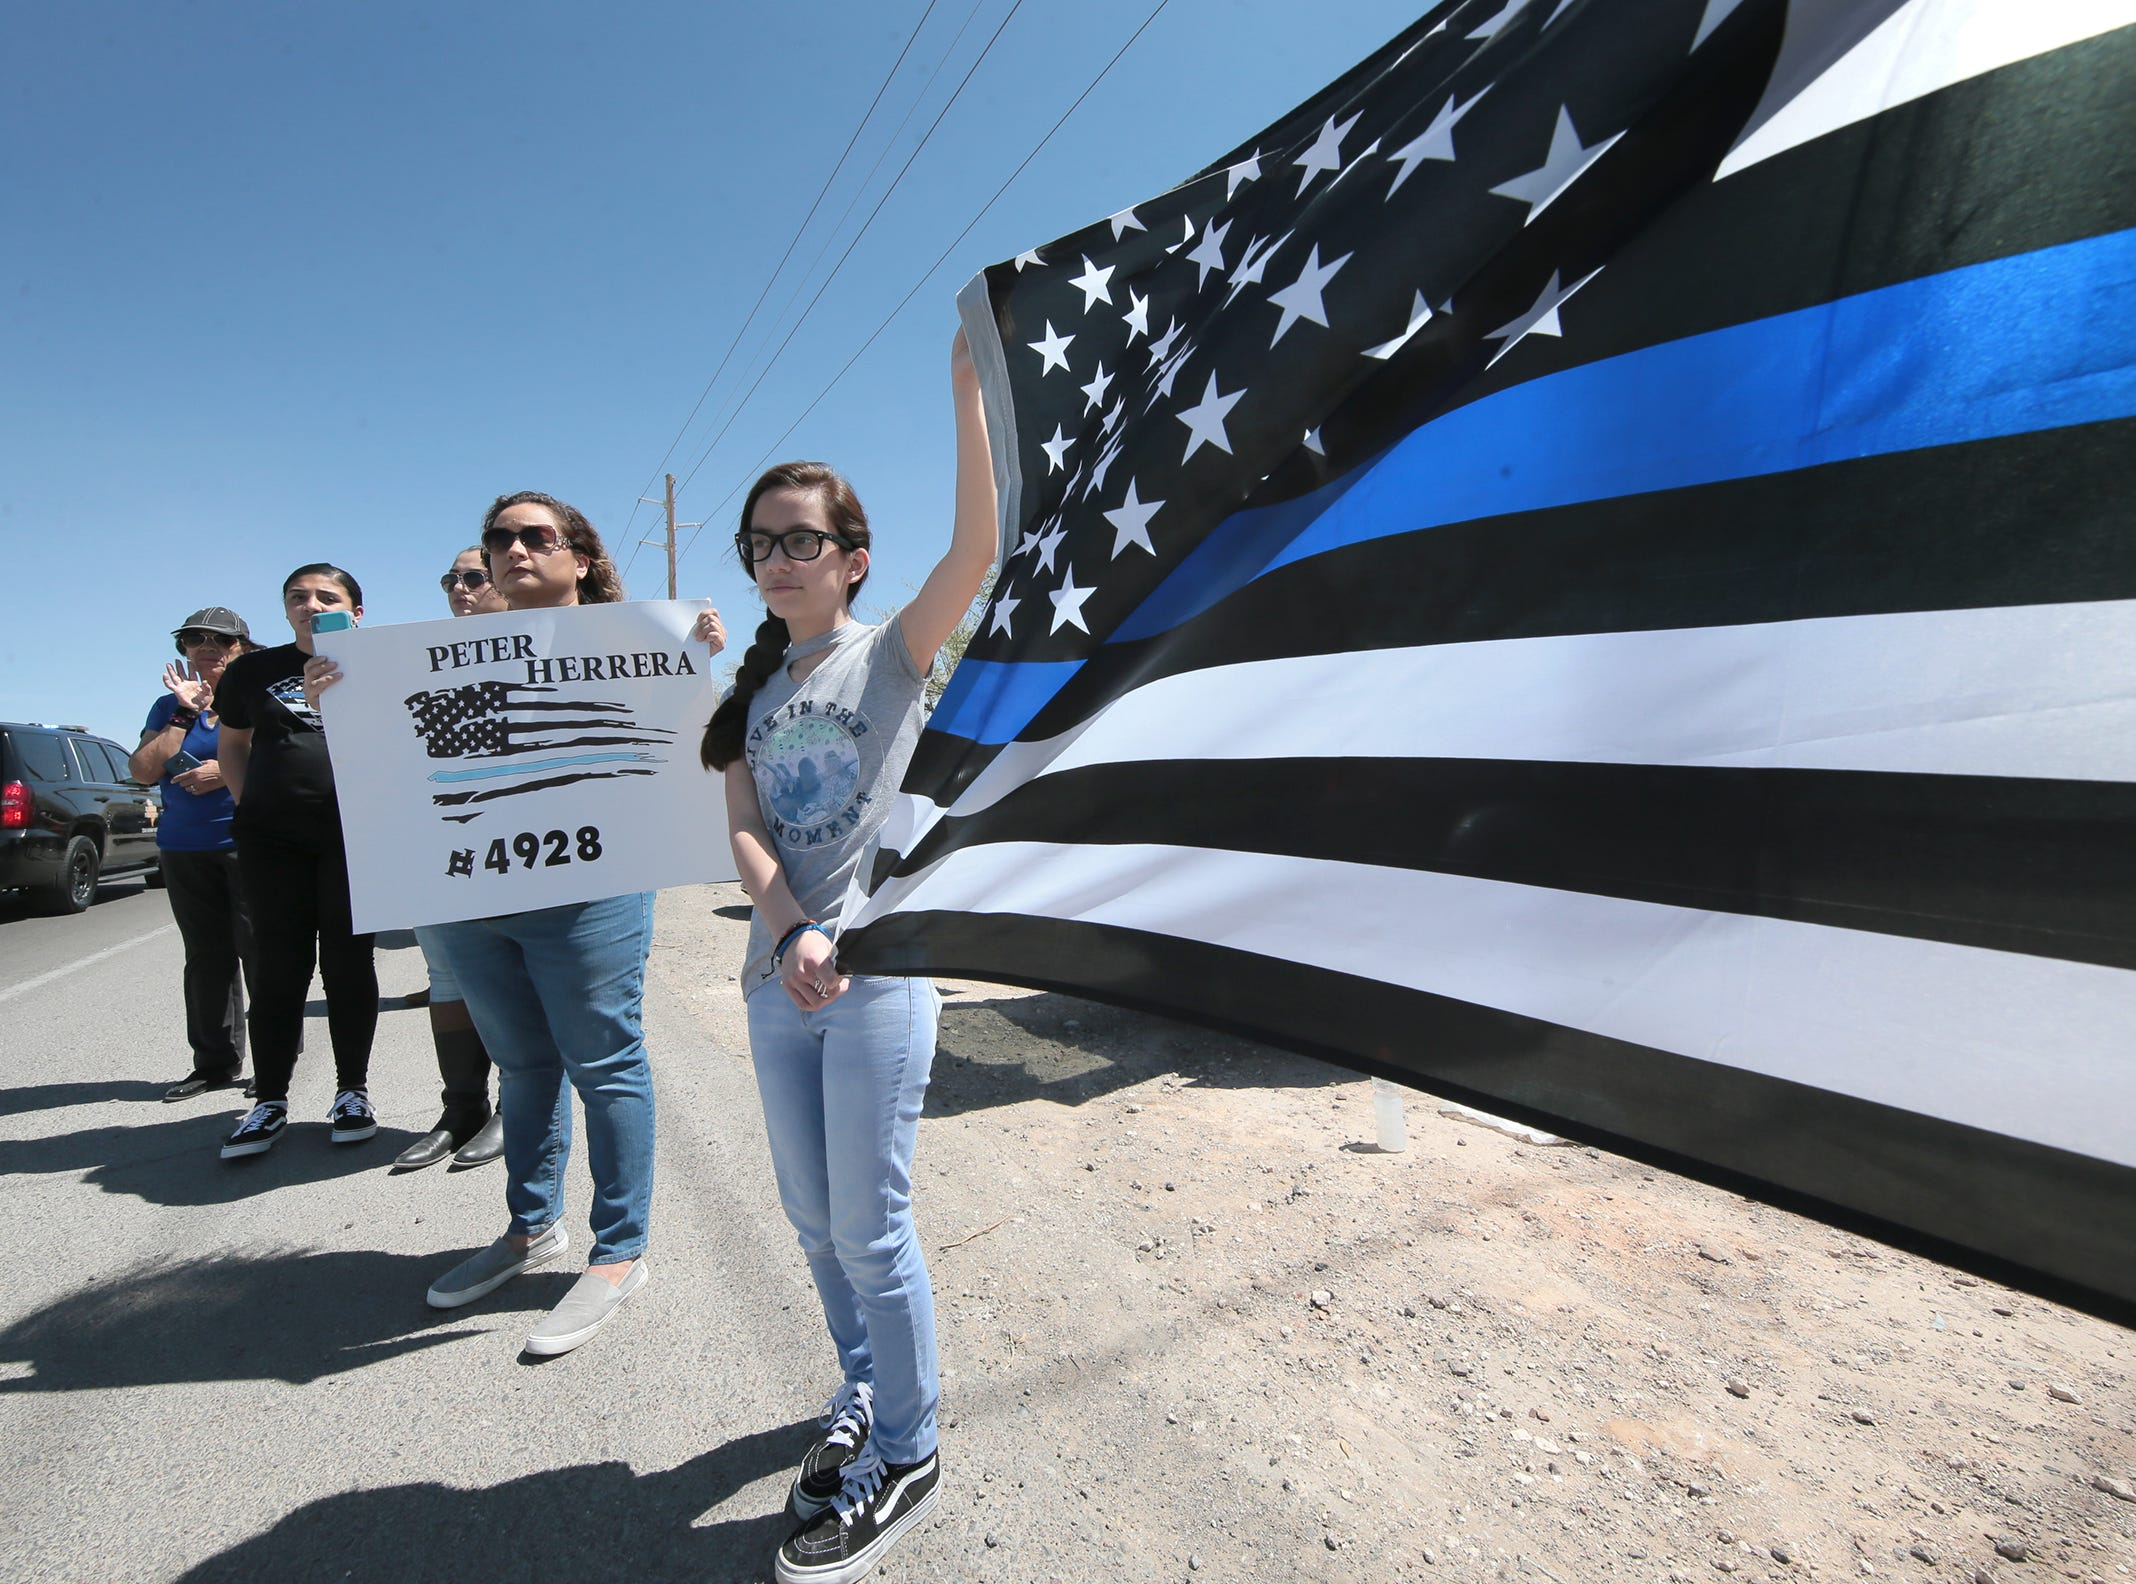 Mourners line the funeral procession route Friday, March 29, 2019, for El Paso County Sheriff's Office Deputy Peter Herrera, who was fatally shot in a traffic stop.